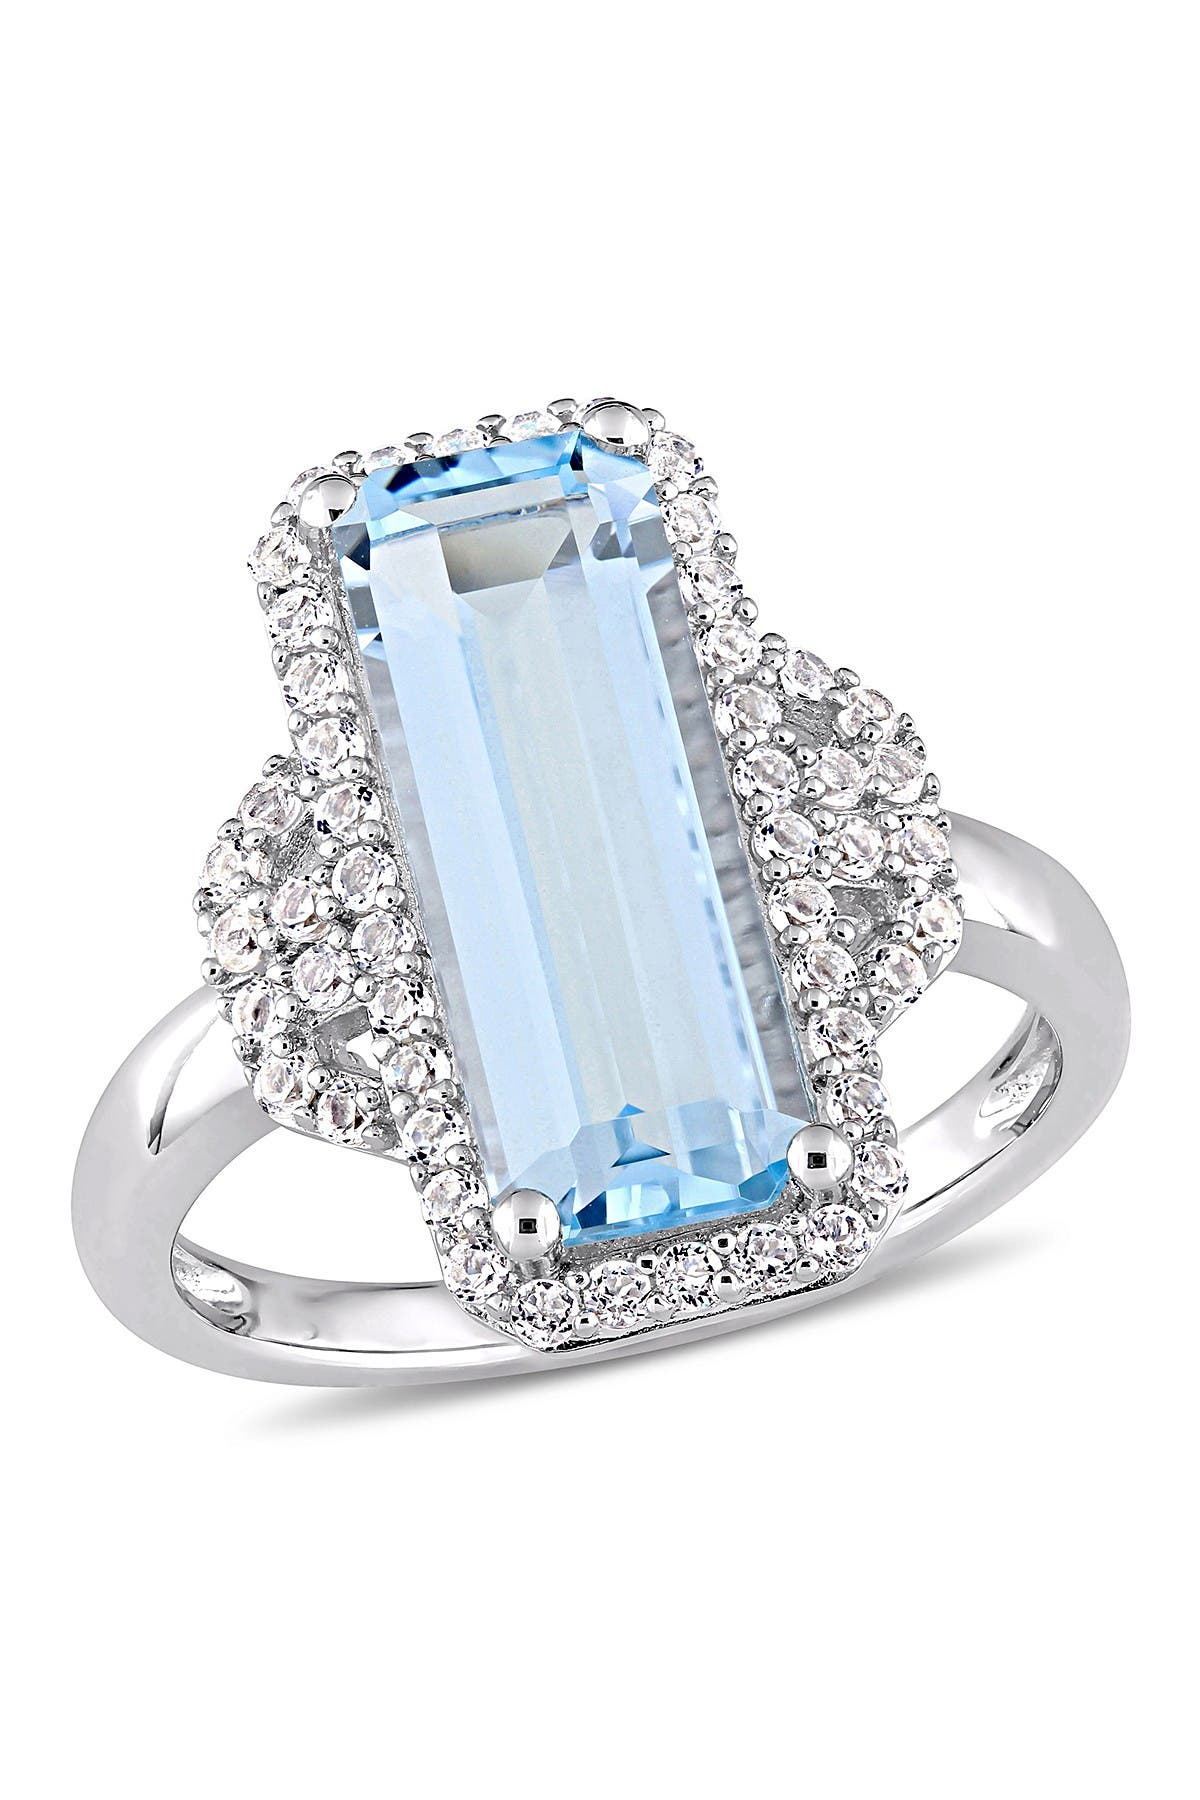 Image of Delmar Sterling Silver Sky Blue Emerald Cut Topaz & White Topaz Ring